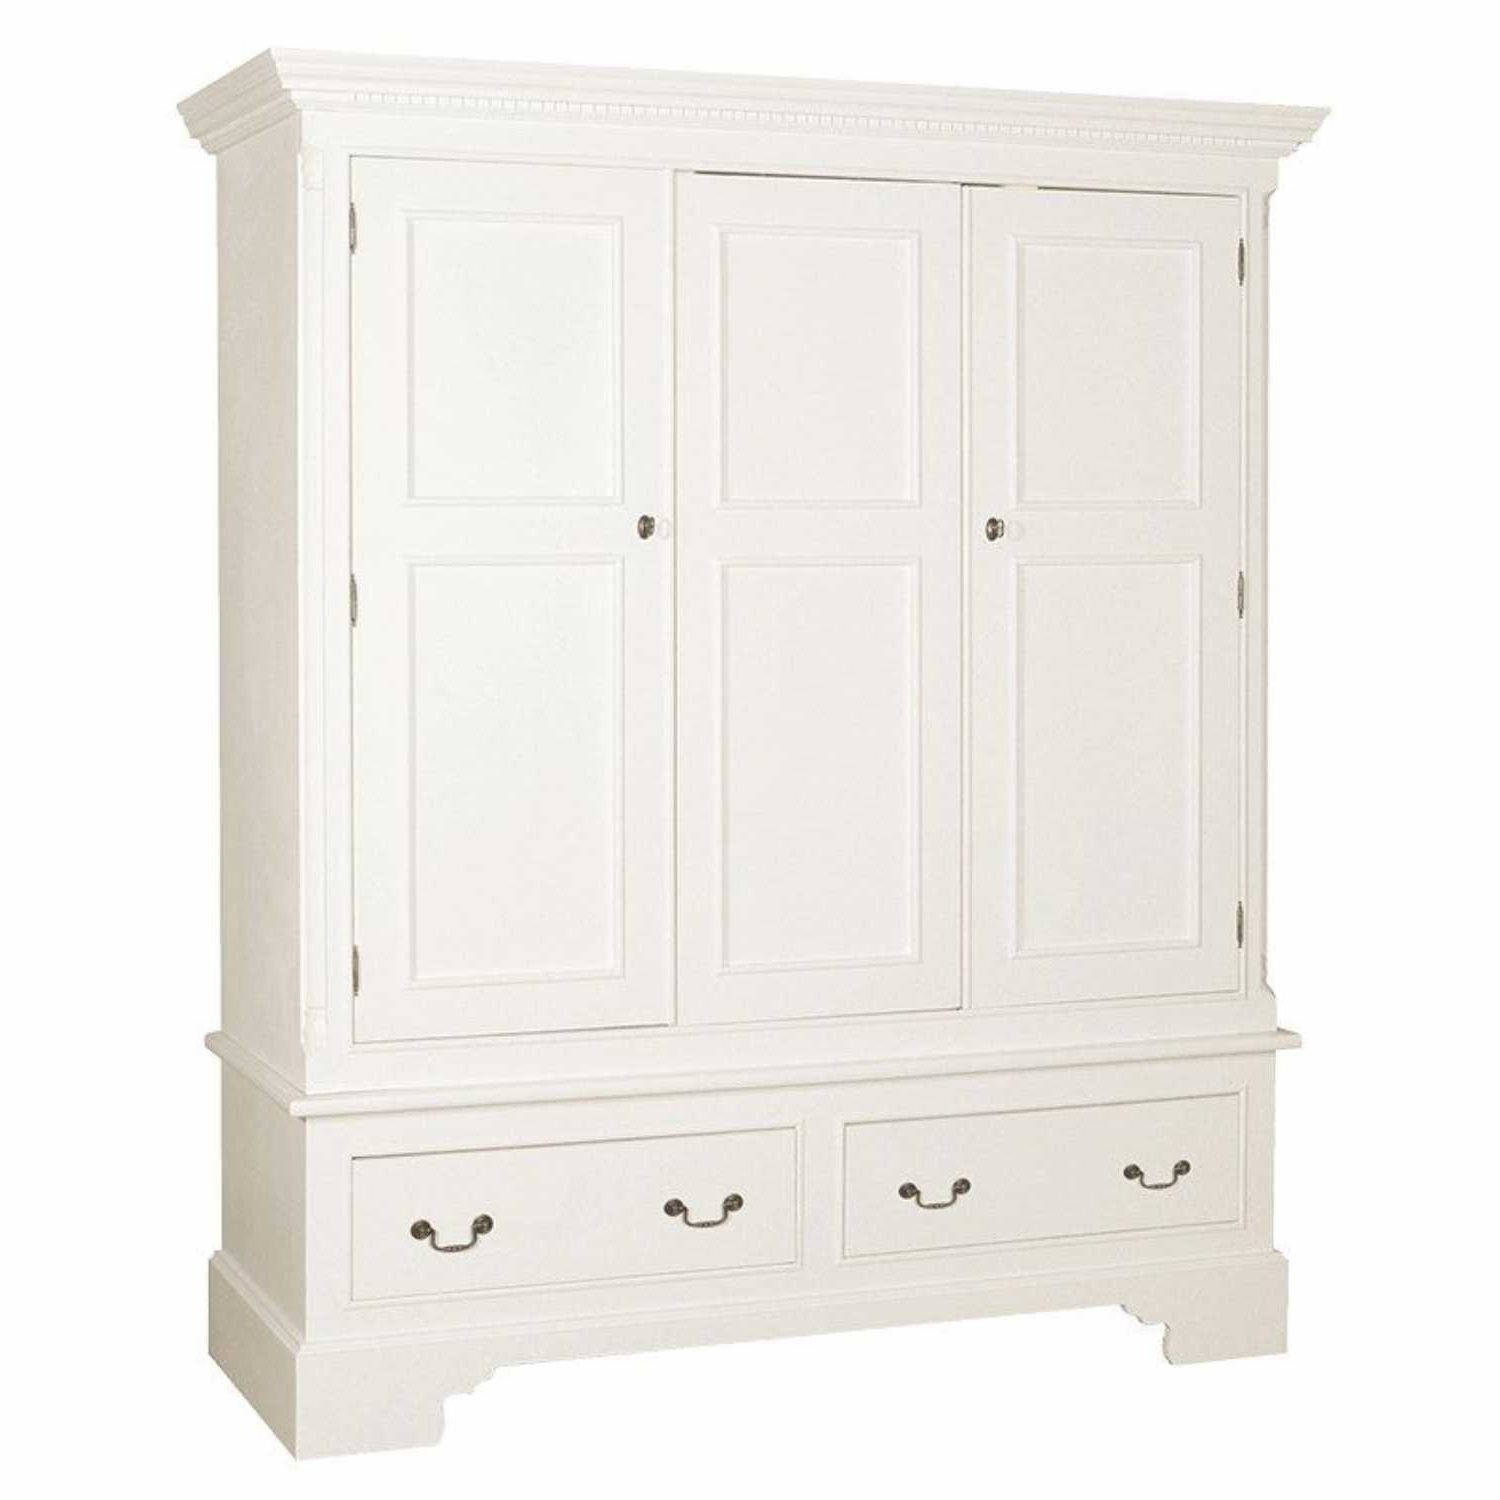 Best And Newest 3 Door White Wardrobes With Drawers In Single White Wardrobe With Drawers 3 Door 2 Argos This Will Be A (View 8 of 15)